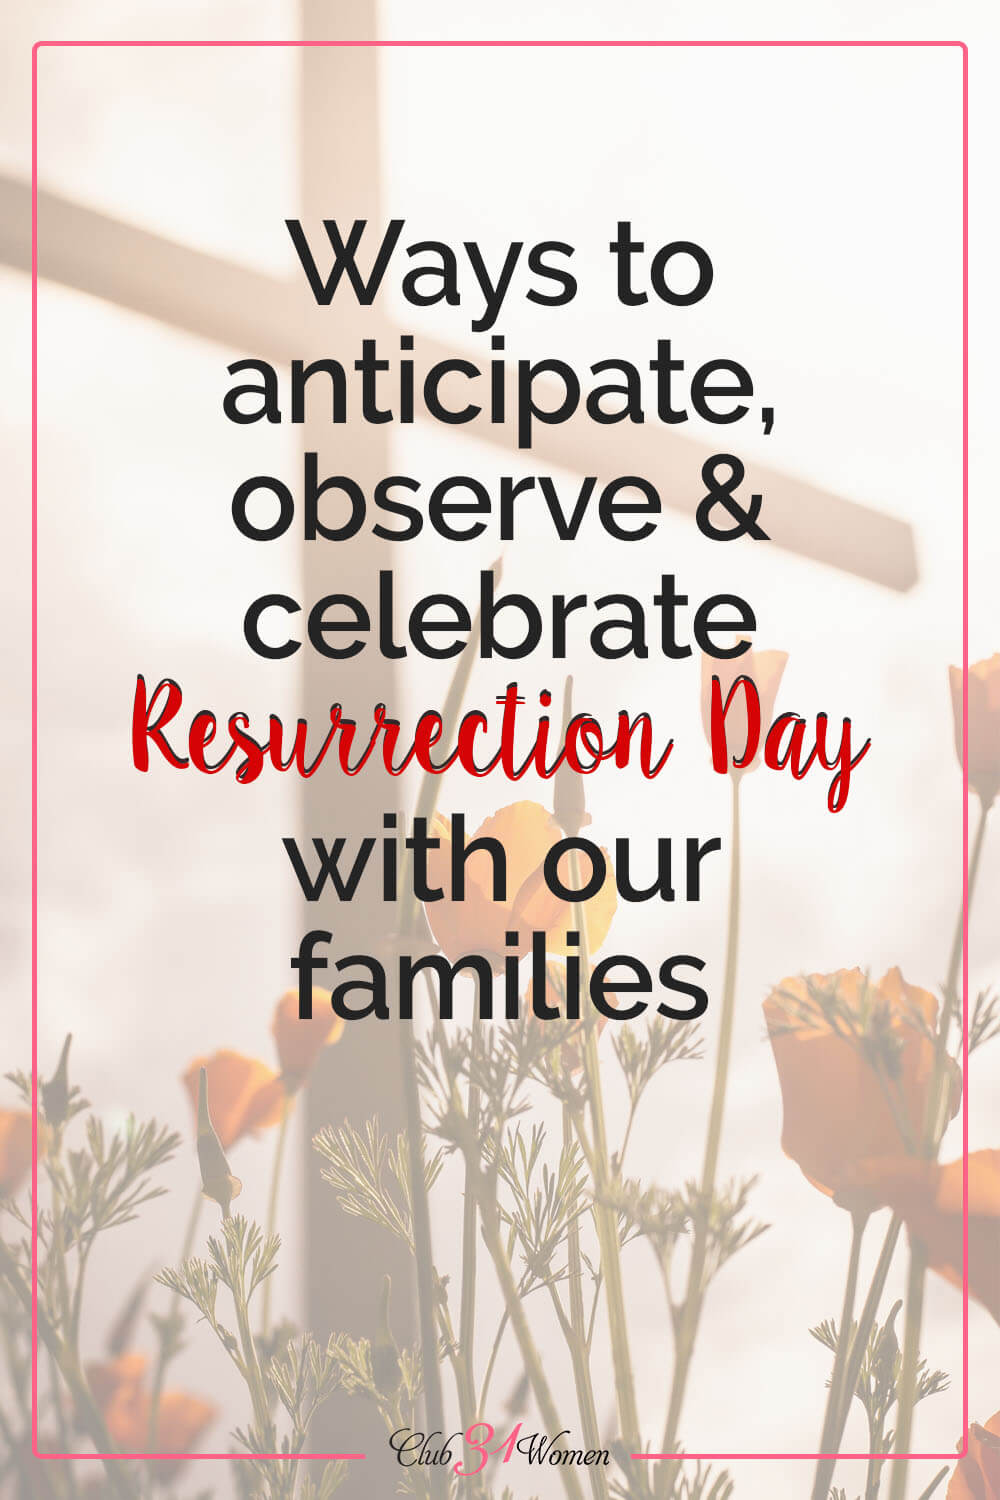 When we look ahead to the resurrection of Christ, we can begin to prepare our hearts for celebrating His victory over sin and death! via @Club31Women